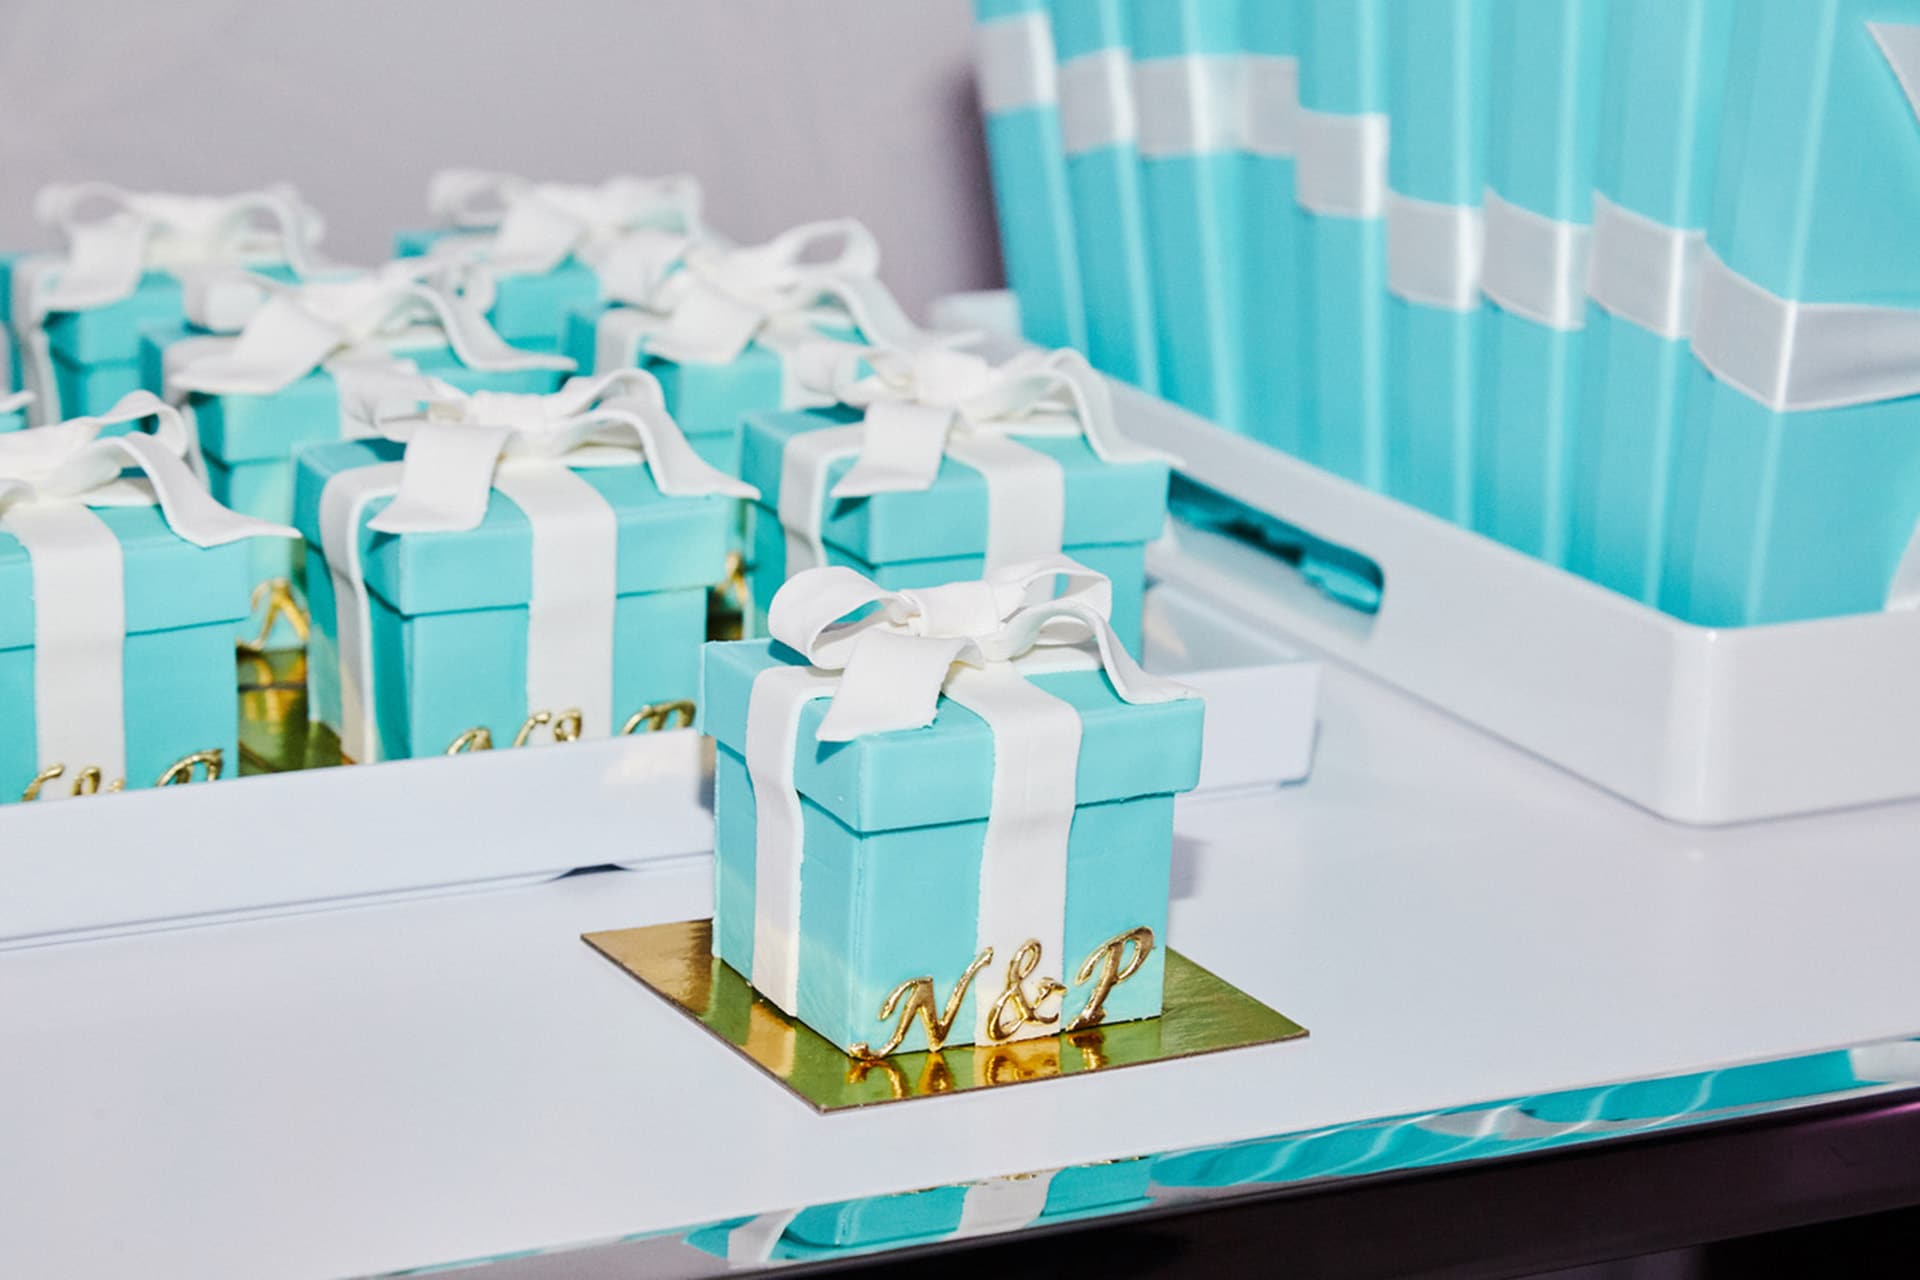 Guests took home Tiffany box-shaped cakes. Image credit: Andrew Day